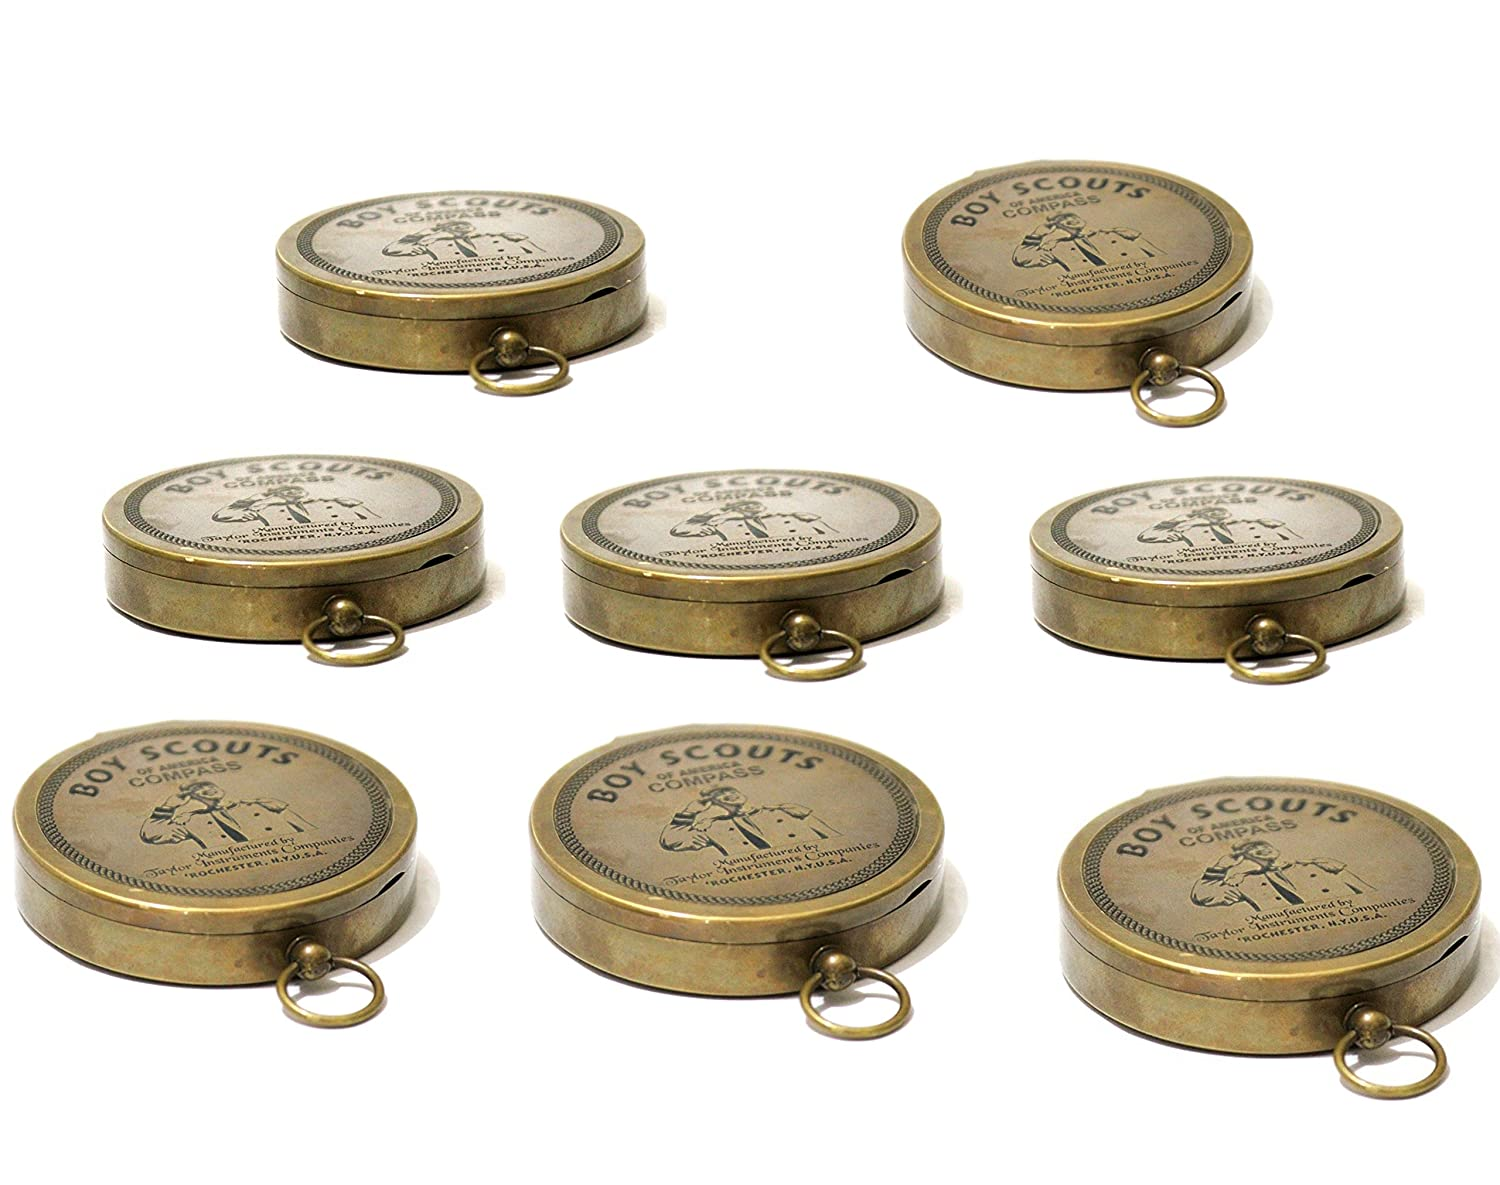 Collectibles Buy American Boy Scout Compass Antique Vintage Brass Compass ZNJ2008